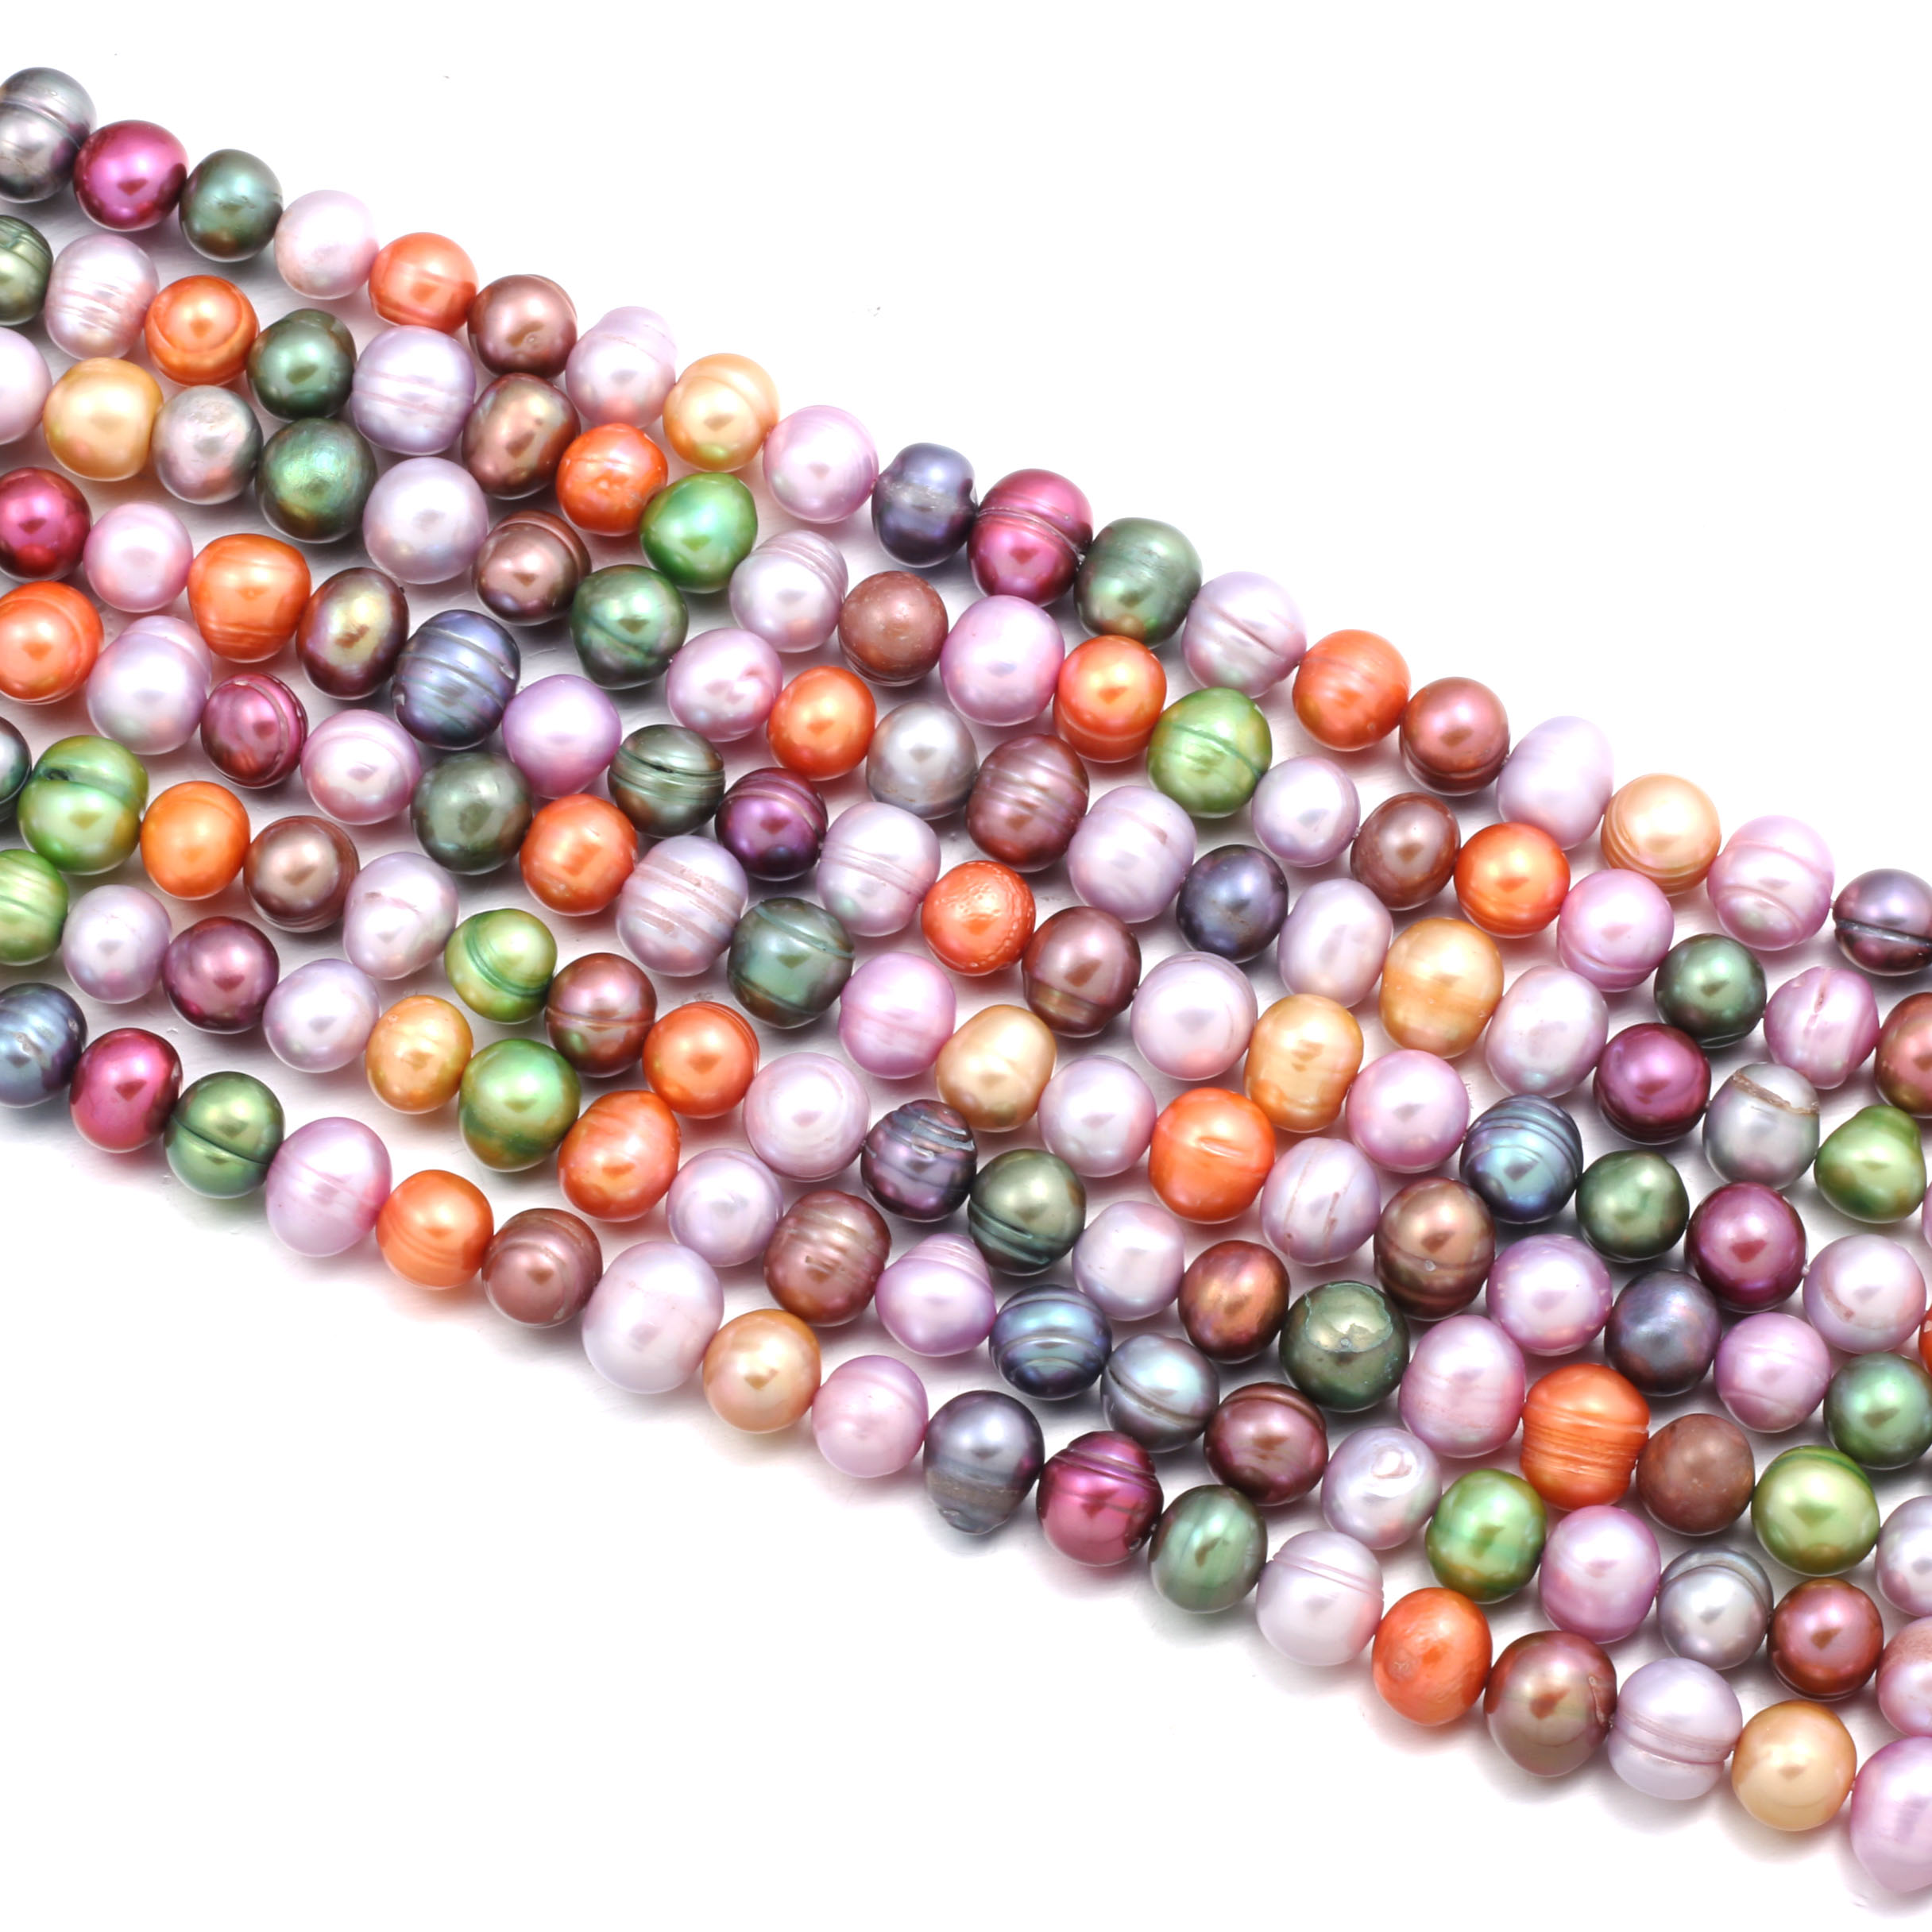 Natural Freshwater Pearl Beading High Quality 36cm Mixing Color Round Punch Loose Beads for DIY Jewelry Making Necklace Bracelet